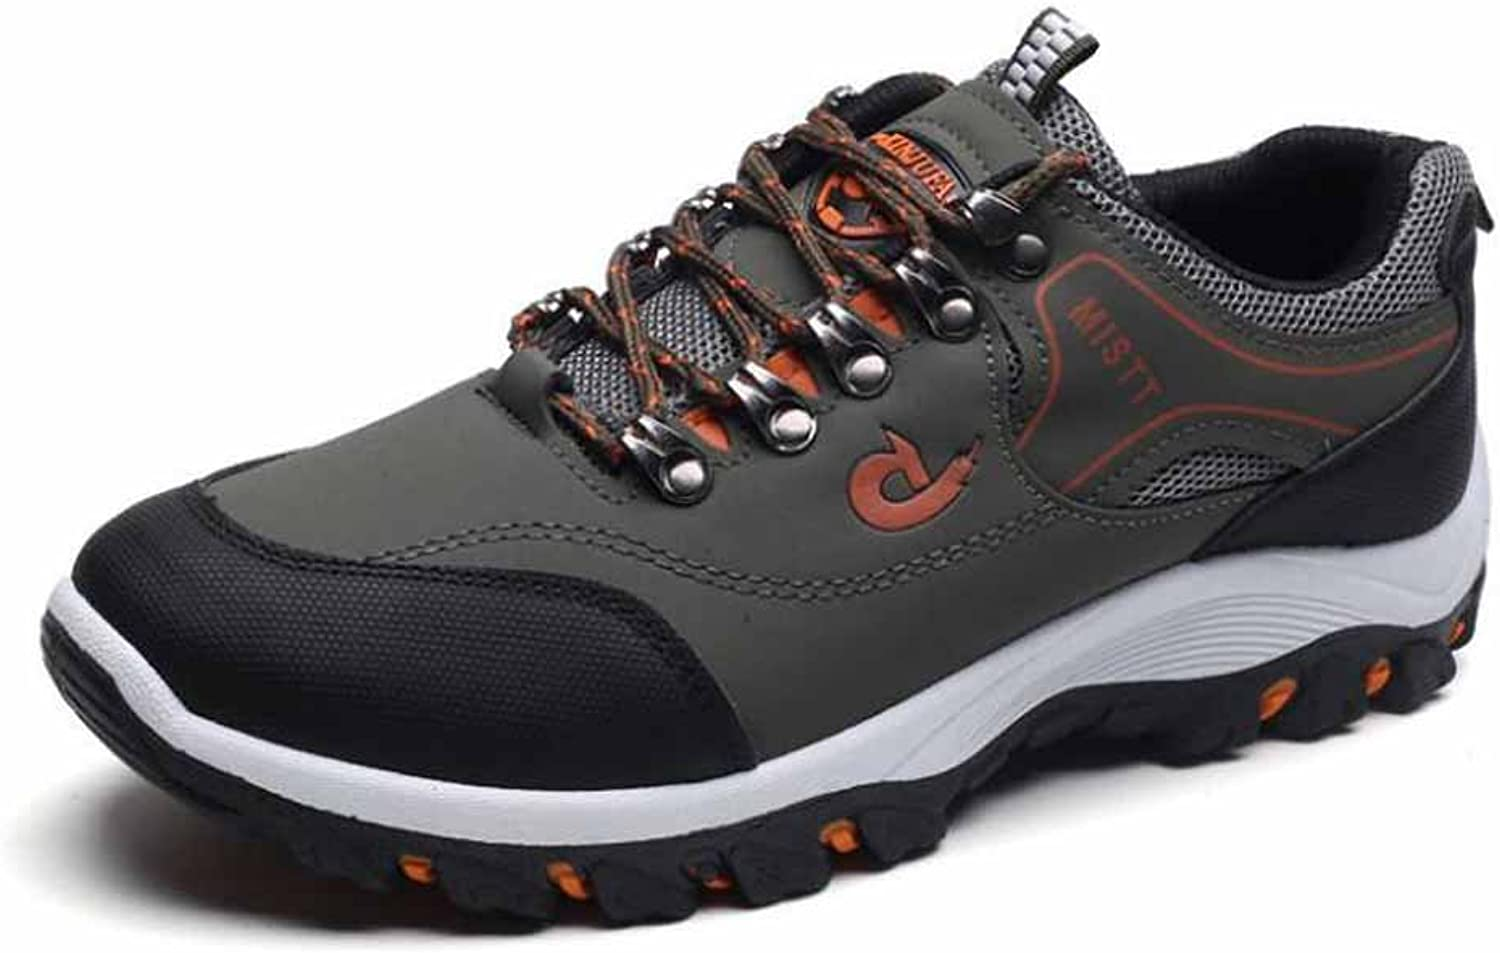 GLSHI Men Breathable Climbing shoes Autumn Winter New Sports shoes Waterproof Anti-skid Outdoor Casual shoes